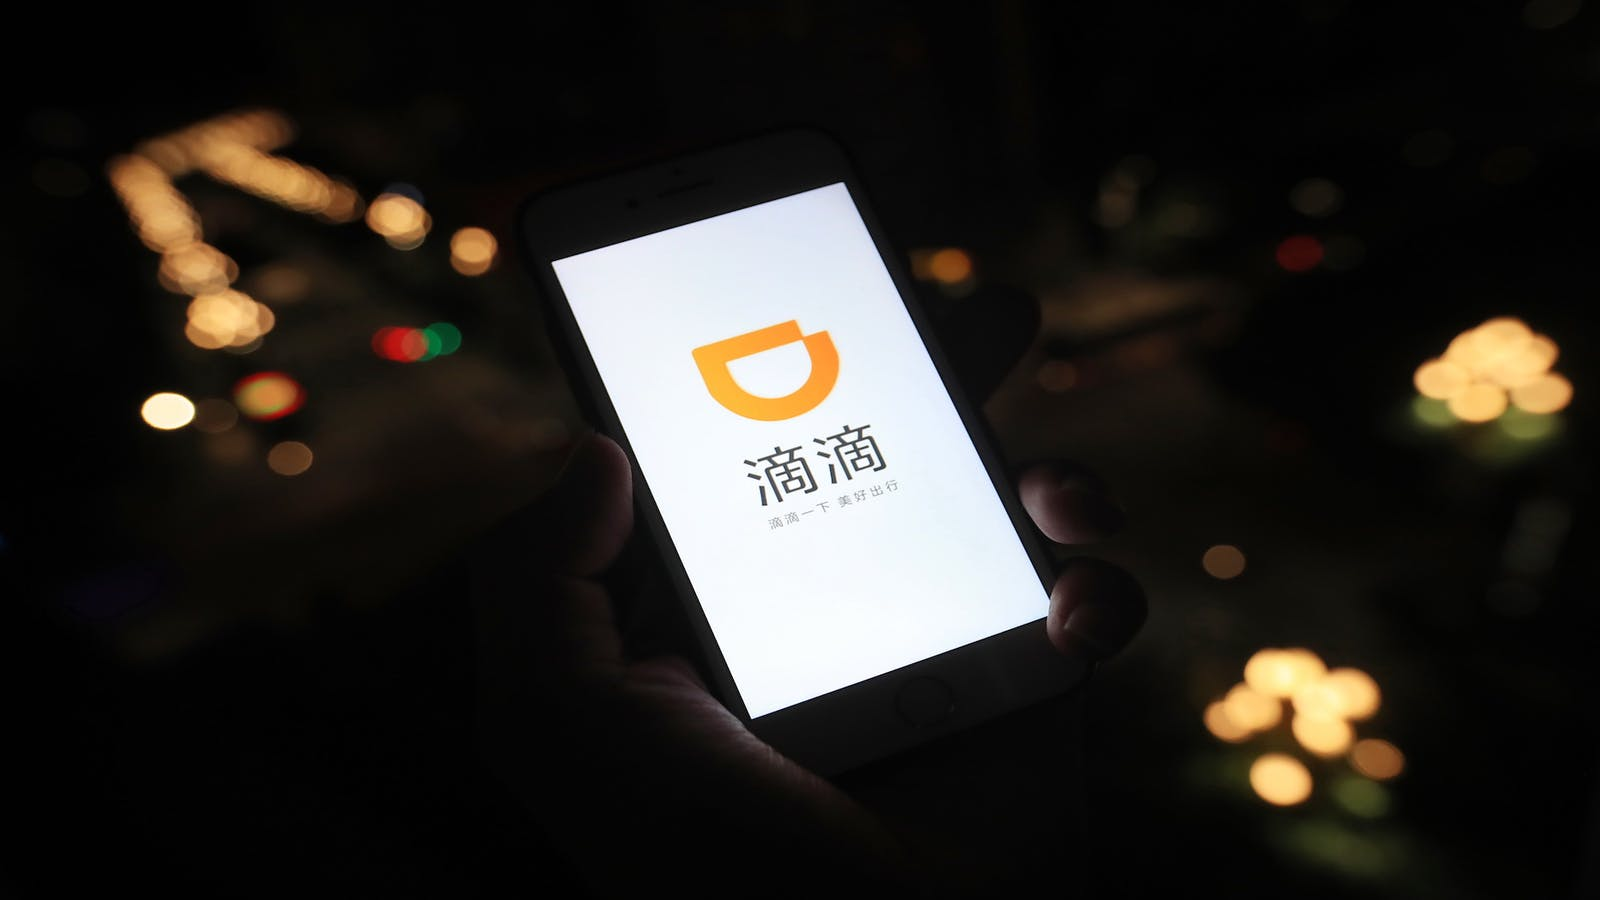 Smartphone app Didi Chuxing. Photo by Imaginechina via AP Images.